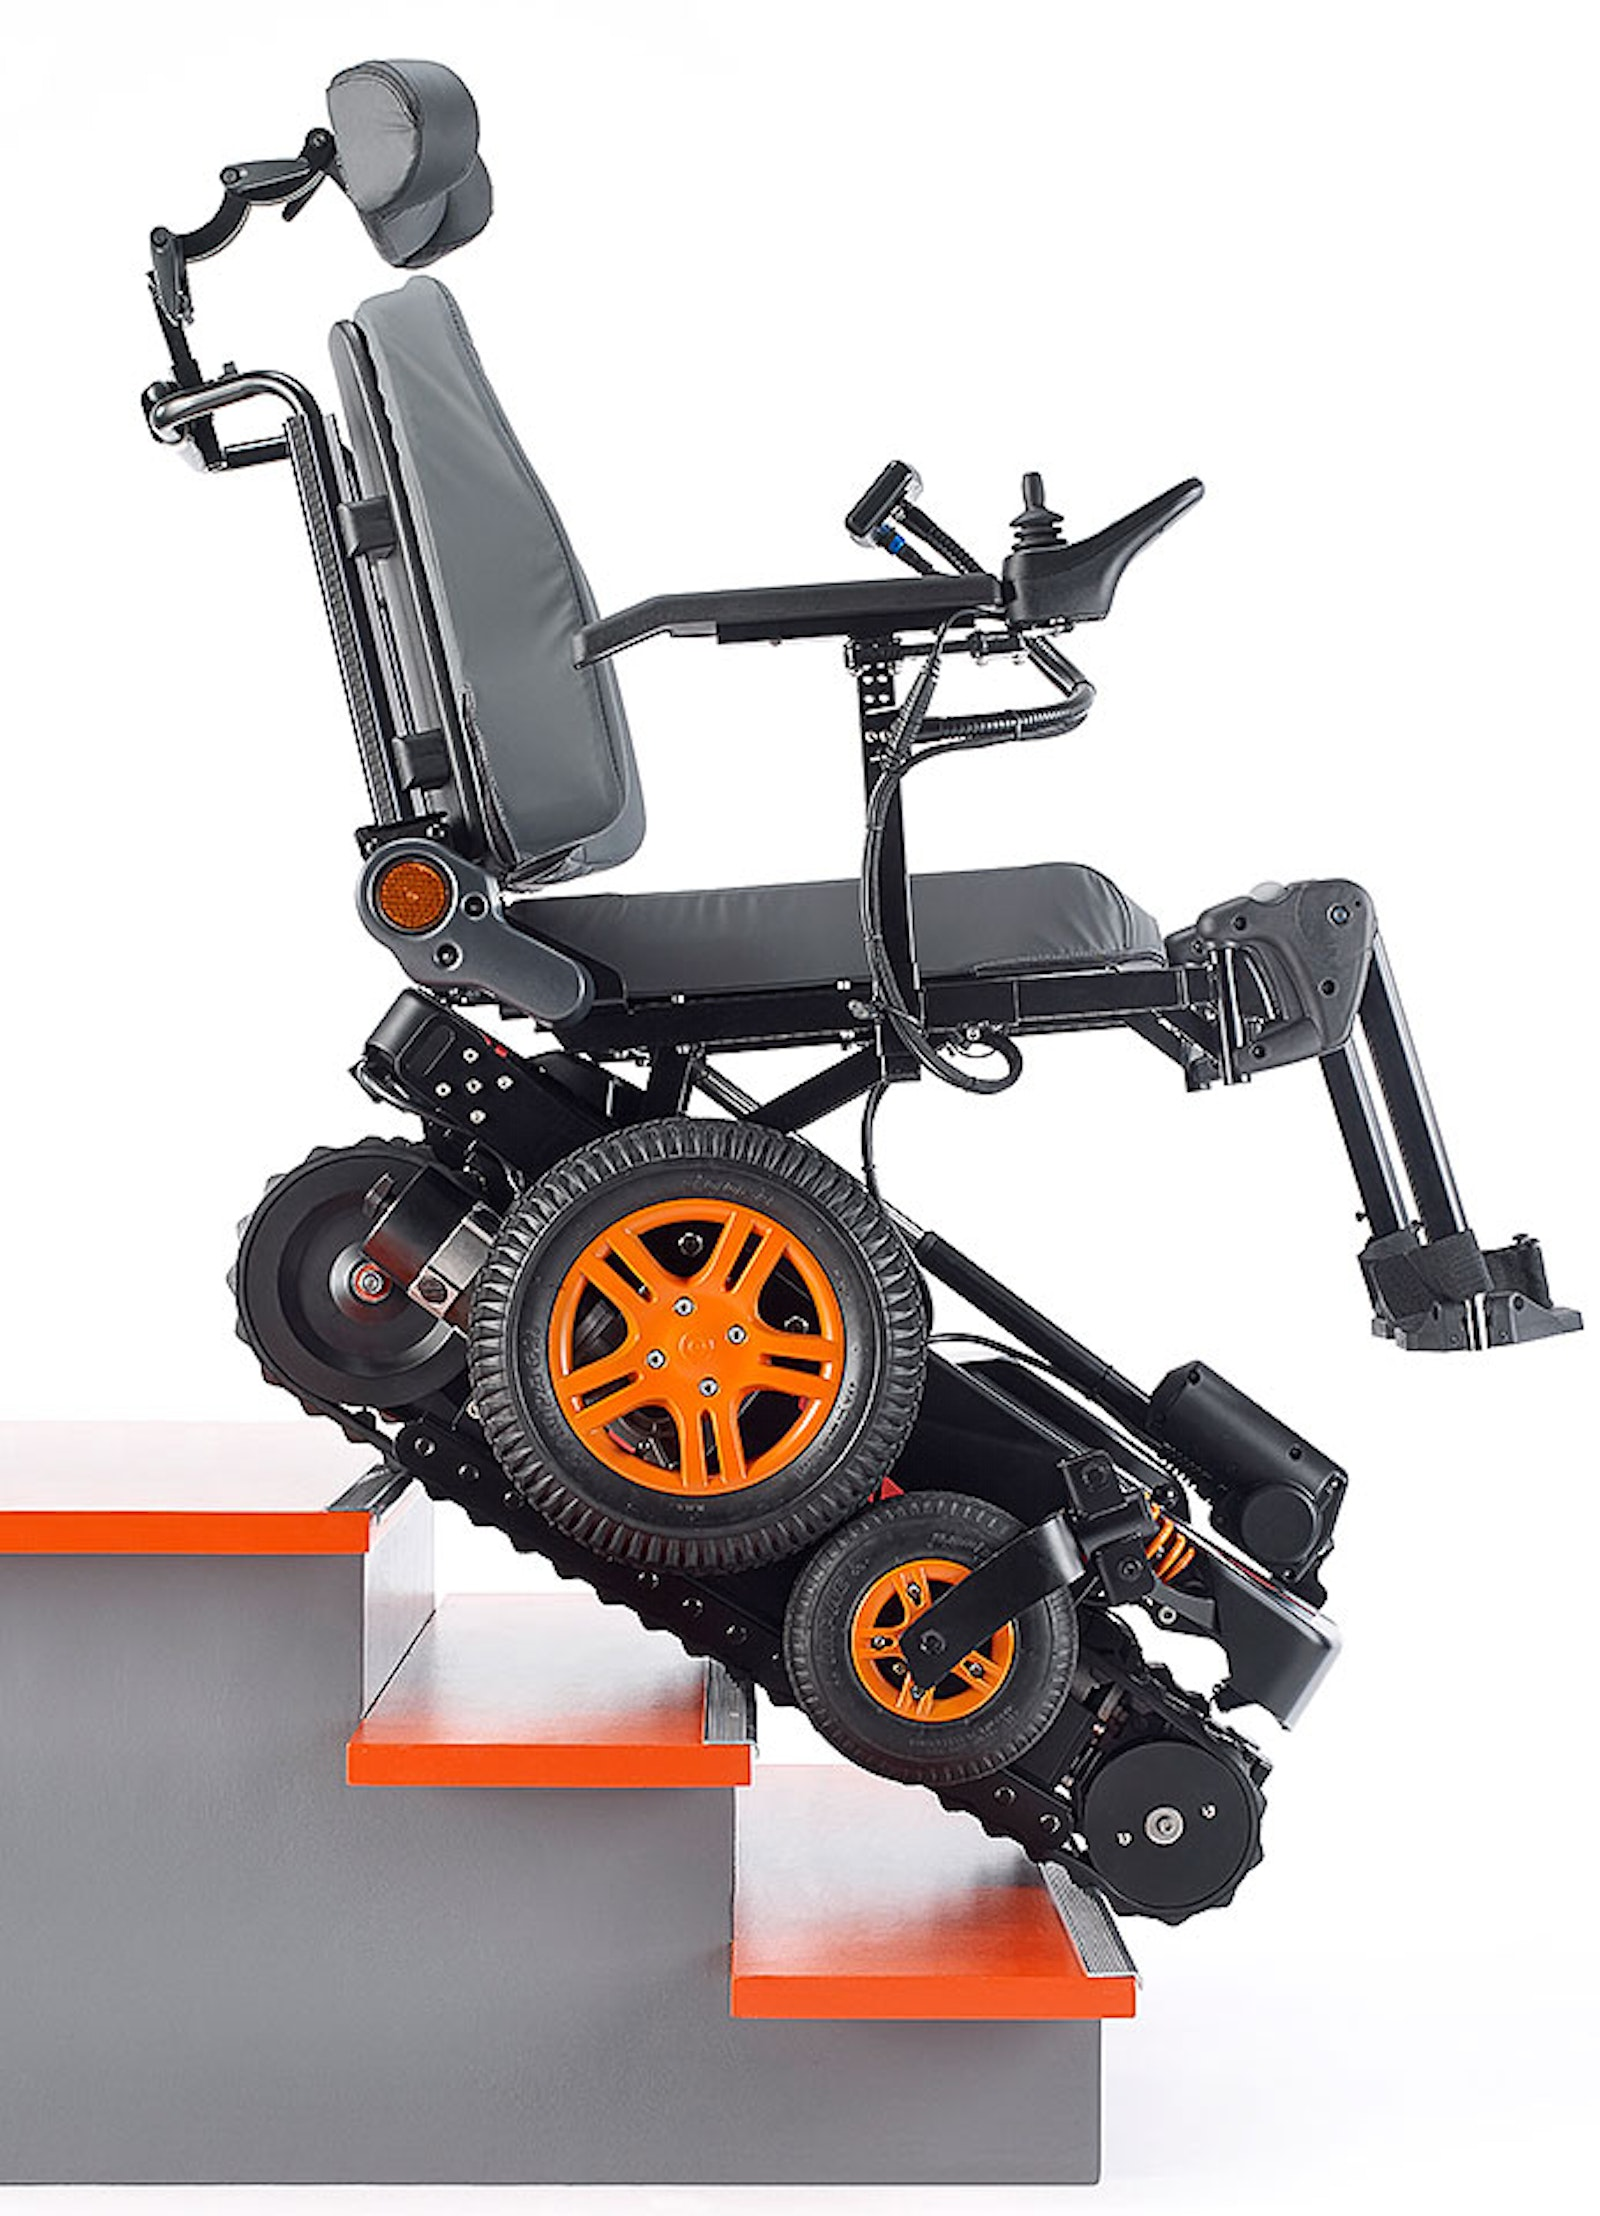 Electric wheelchair climbs up and down stairs | Electric Vehicles